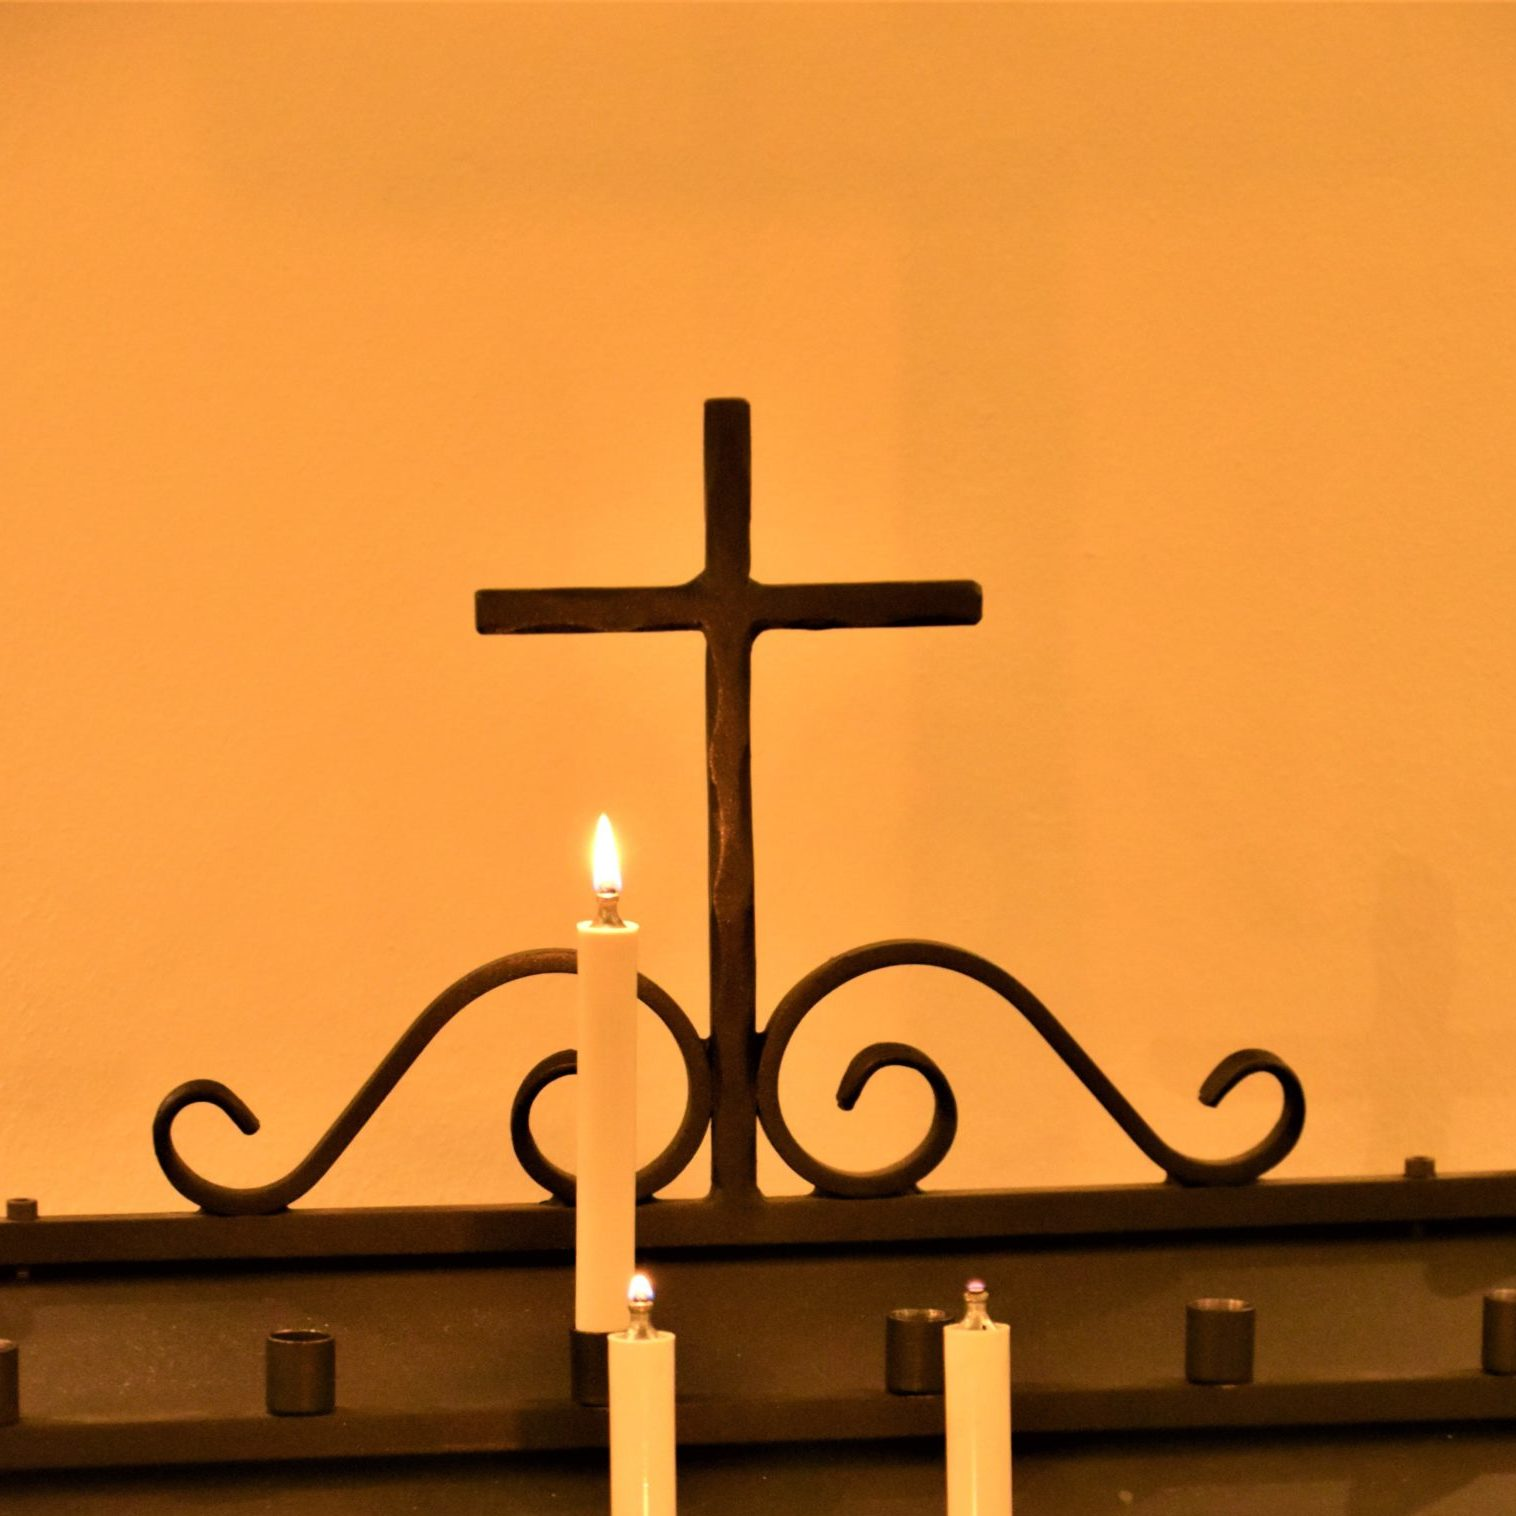 A cross with candles in a church